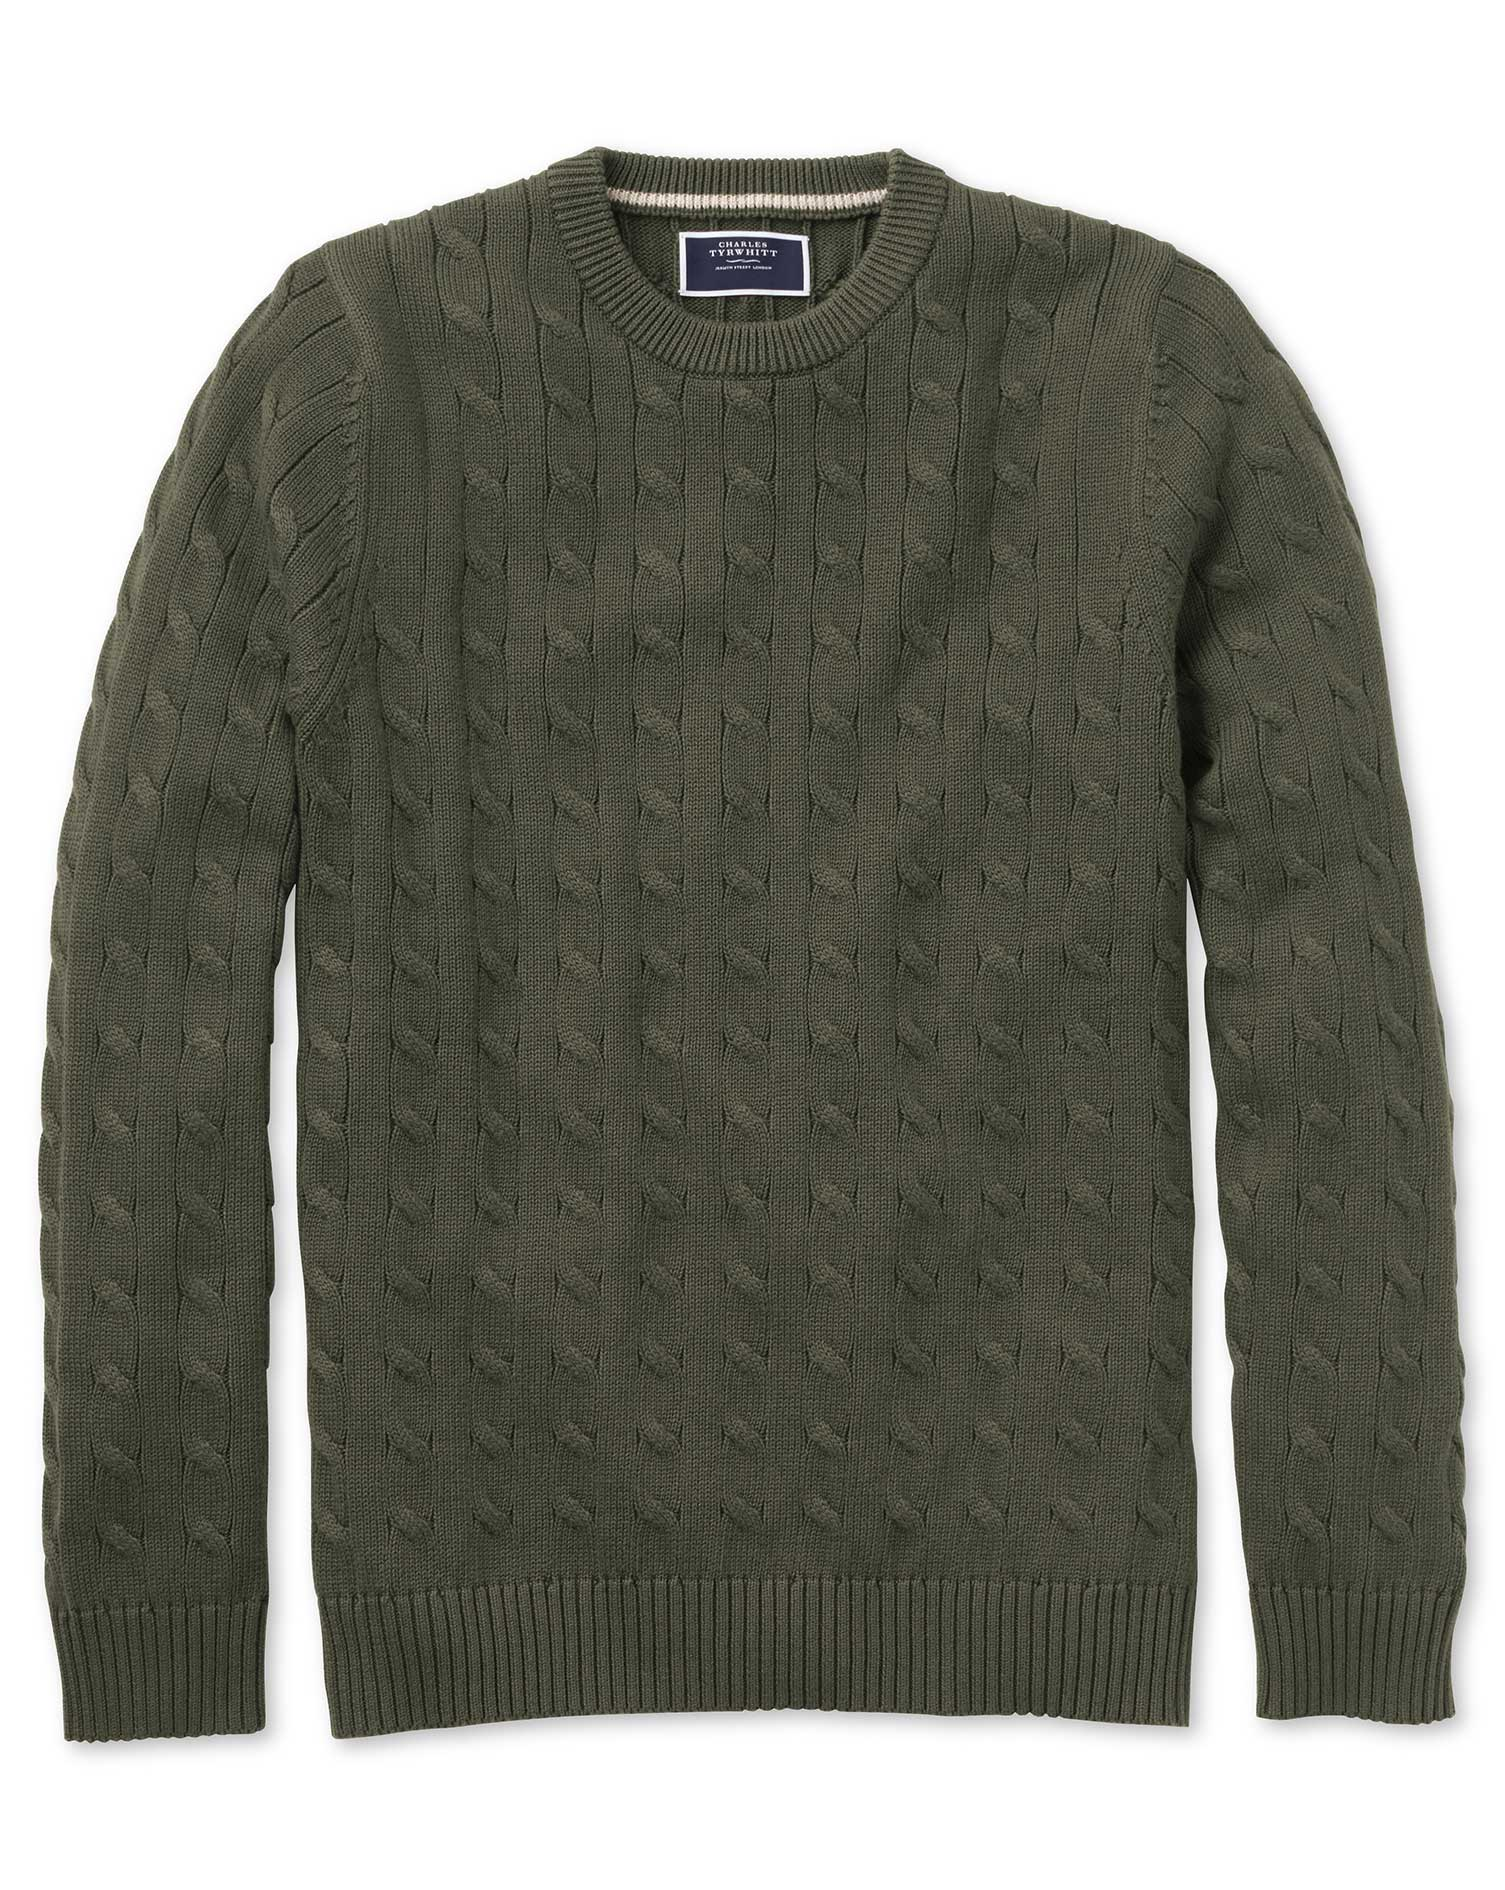 Olive Pima Cotton Cable Crew Neck Jumper Size XXL by Charles Tyrwhitt